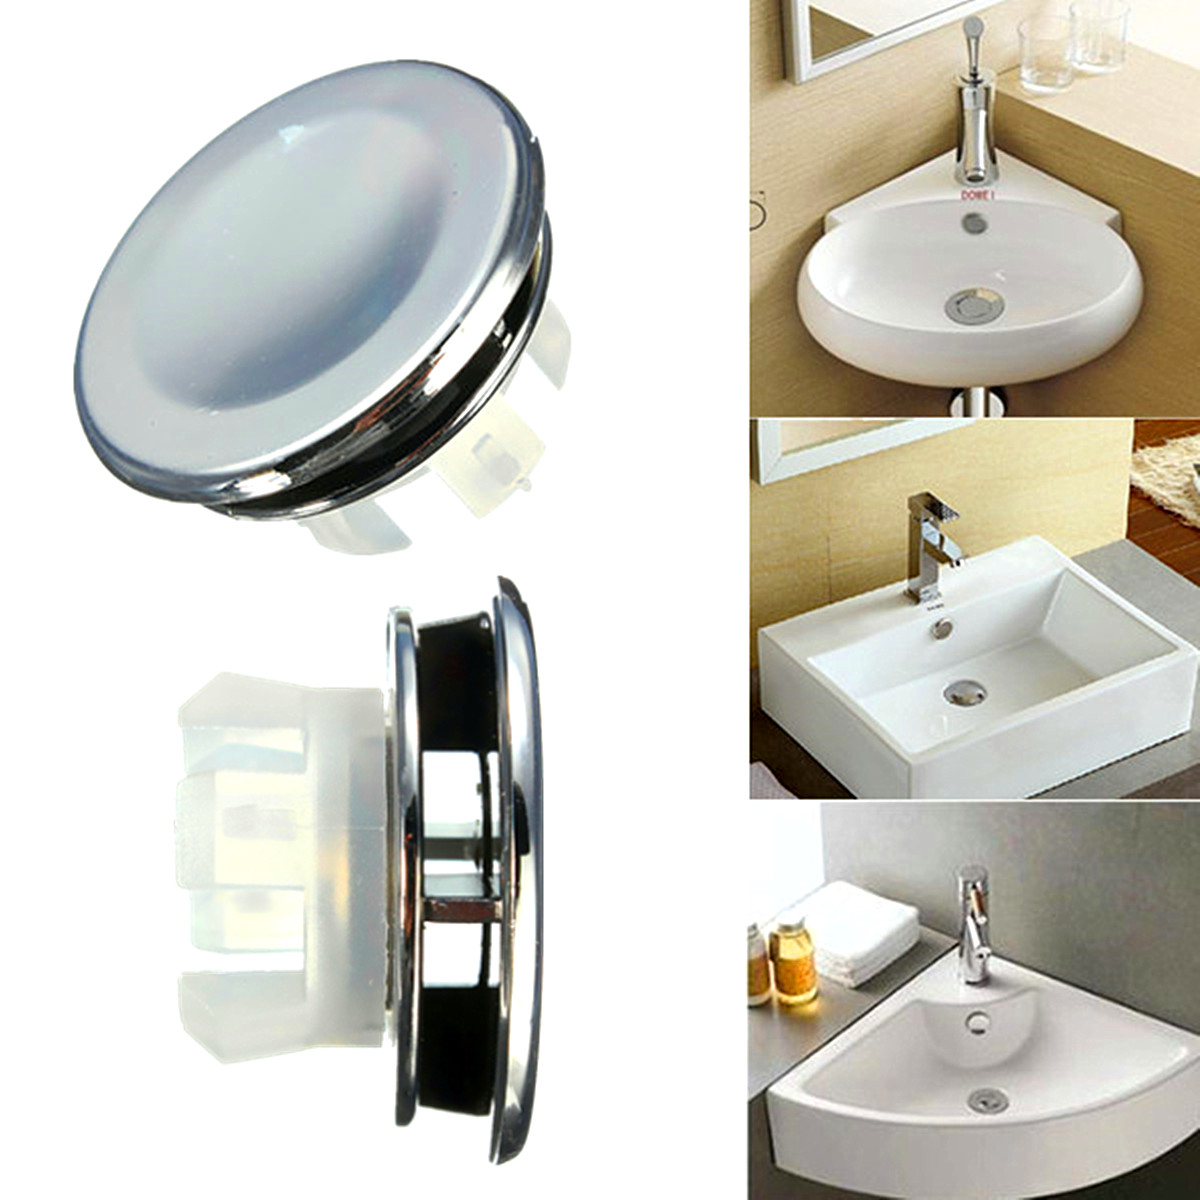 Round overflow cover tidy trim chrome for bathroom basin sink spare